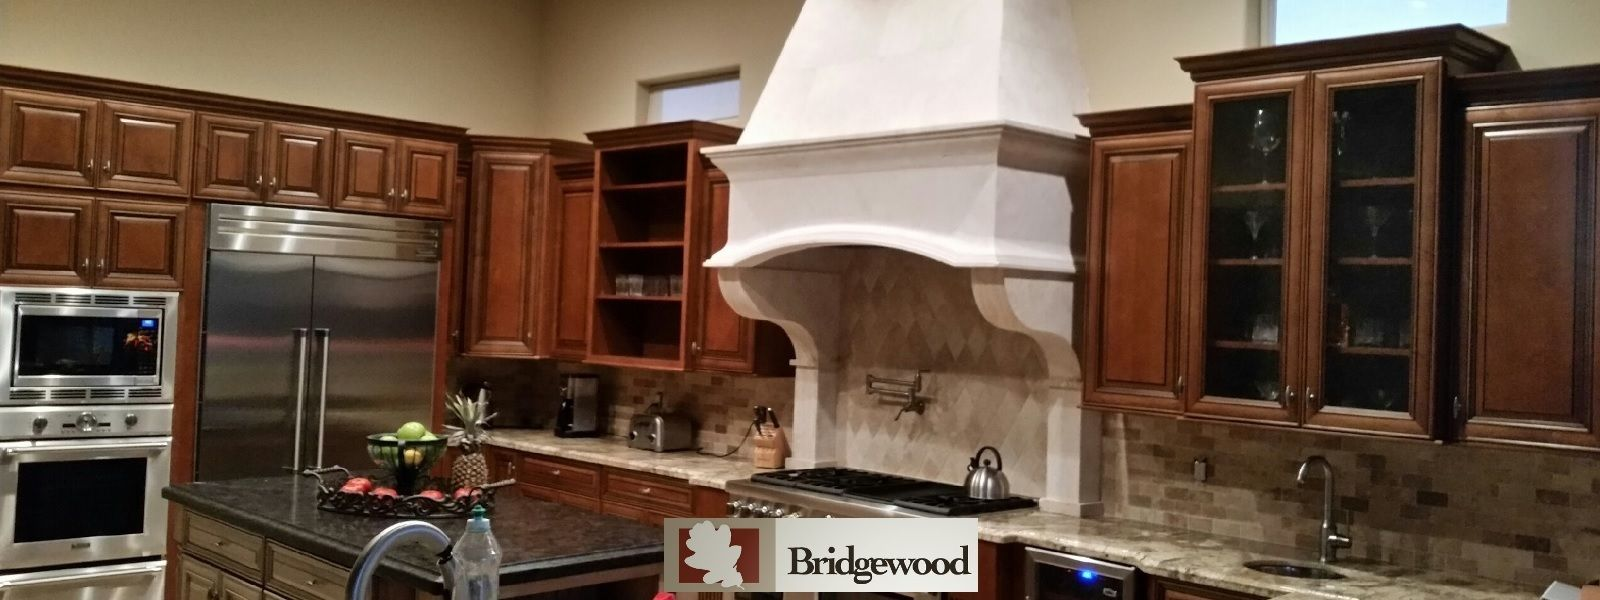 Discount Kitchen Cabinet Remodeling Contractors Make Your Design Kitchen Affordable Kitchen Cabinets Cabinet Kitchen